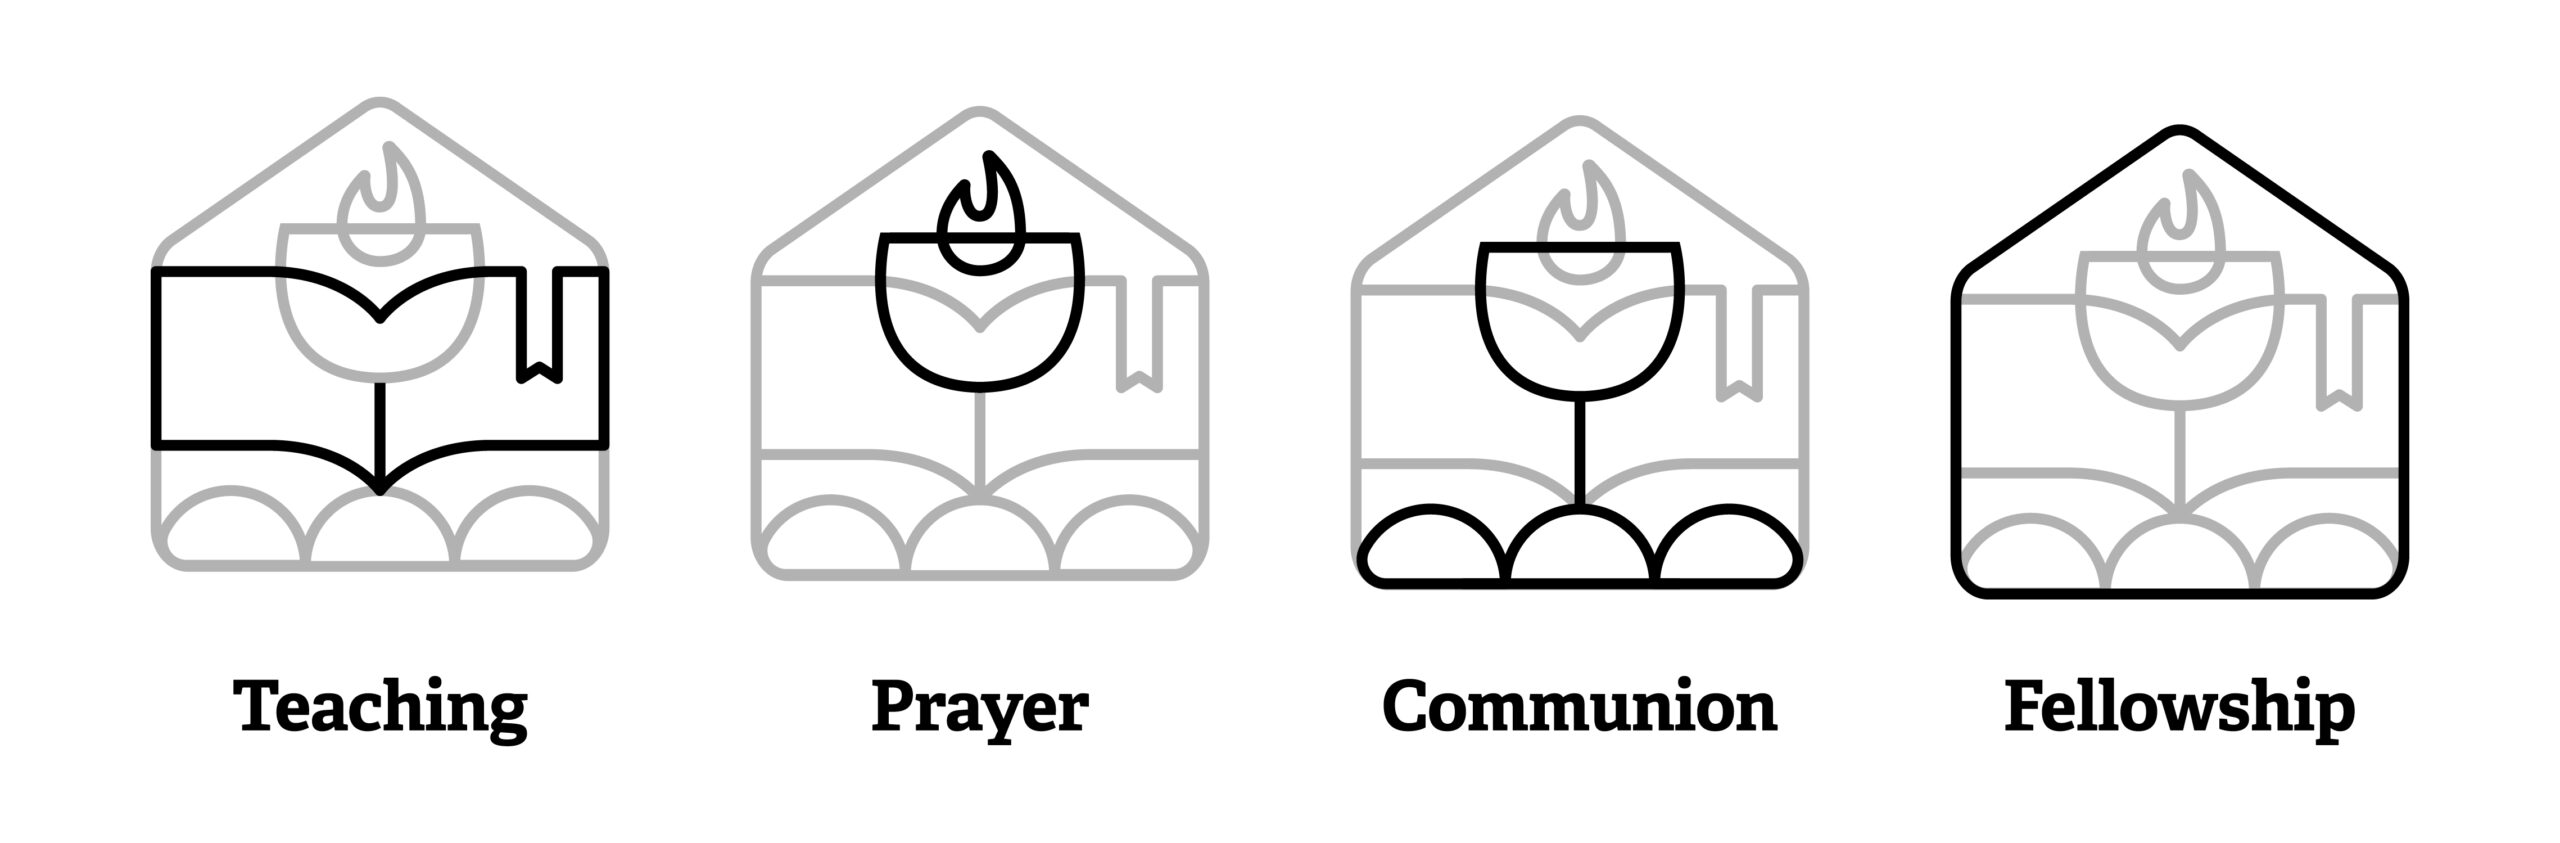 They Devoted Themselves Concepts; Teaching, Prayer, Communion, Fellowship